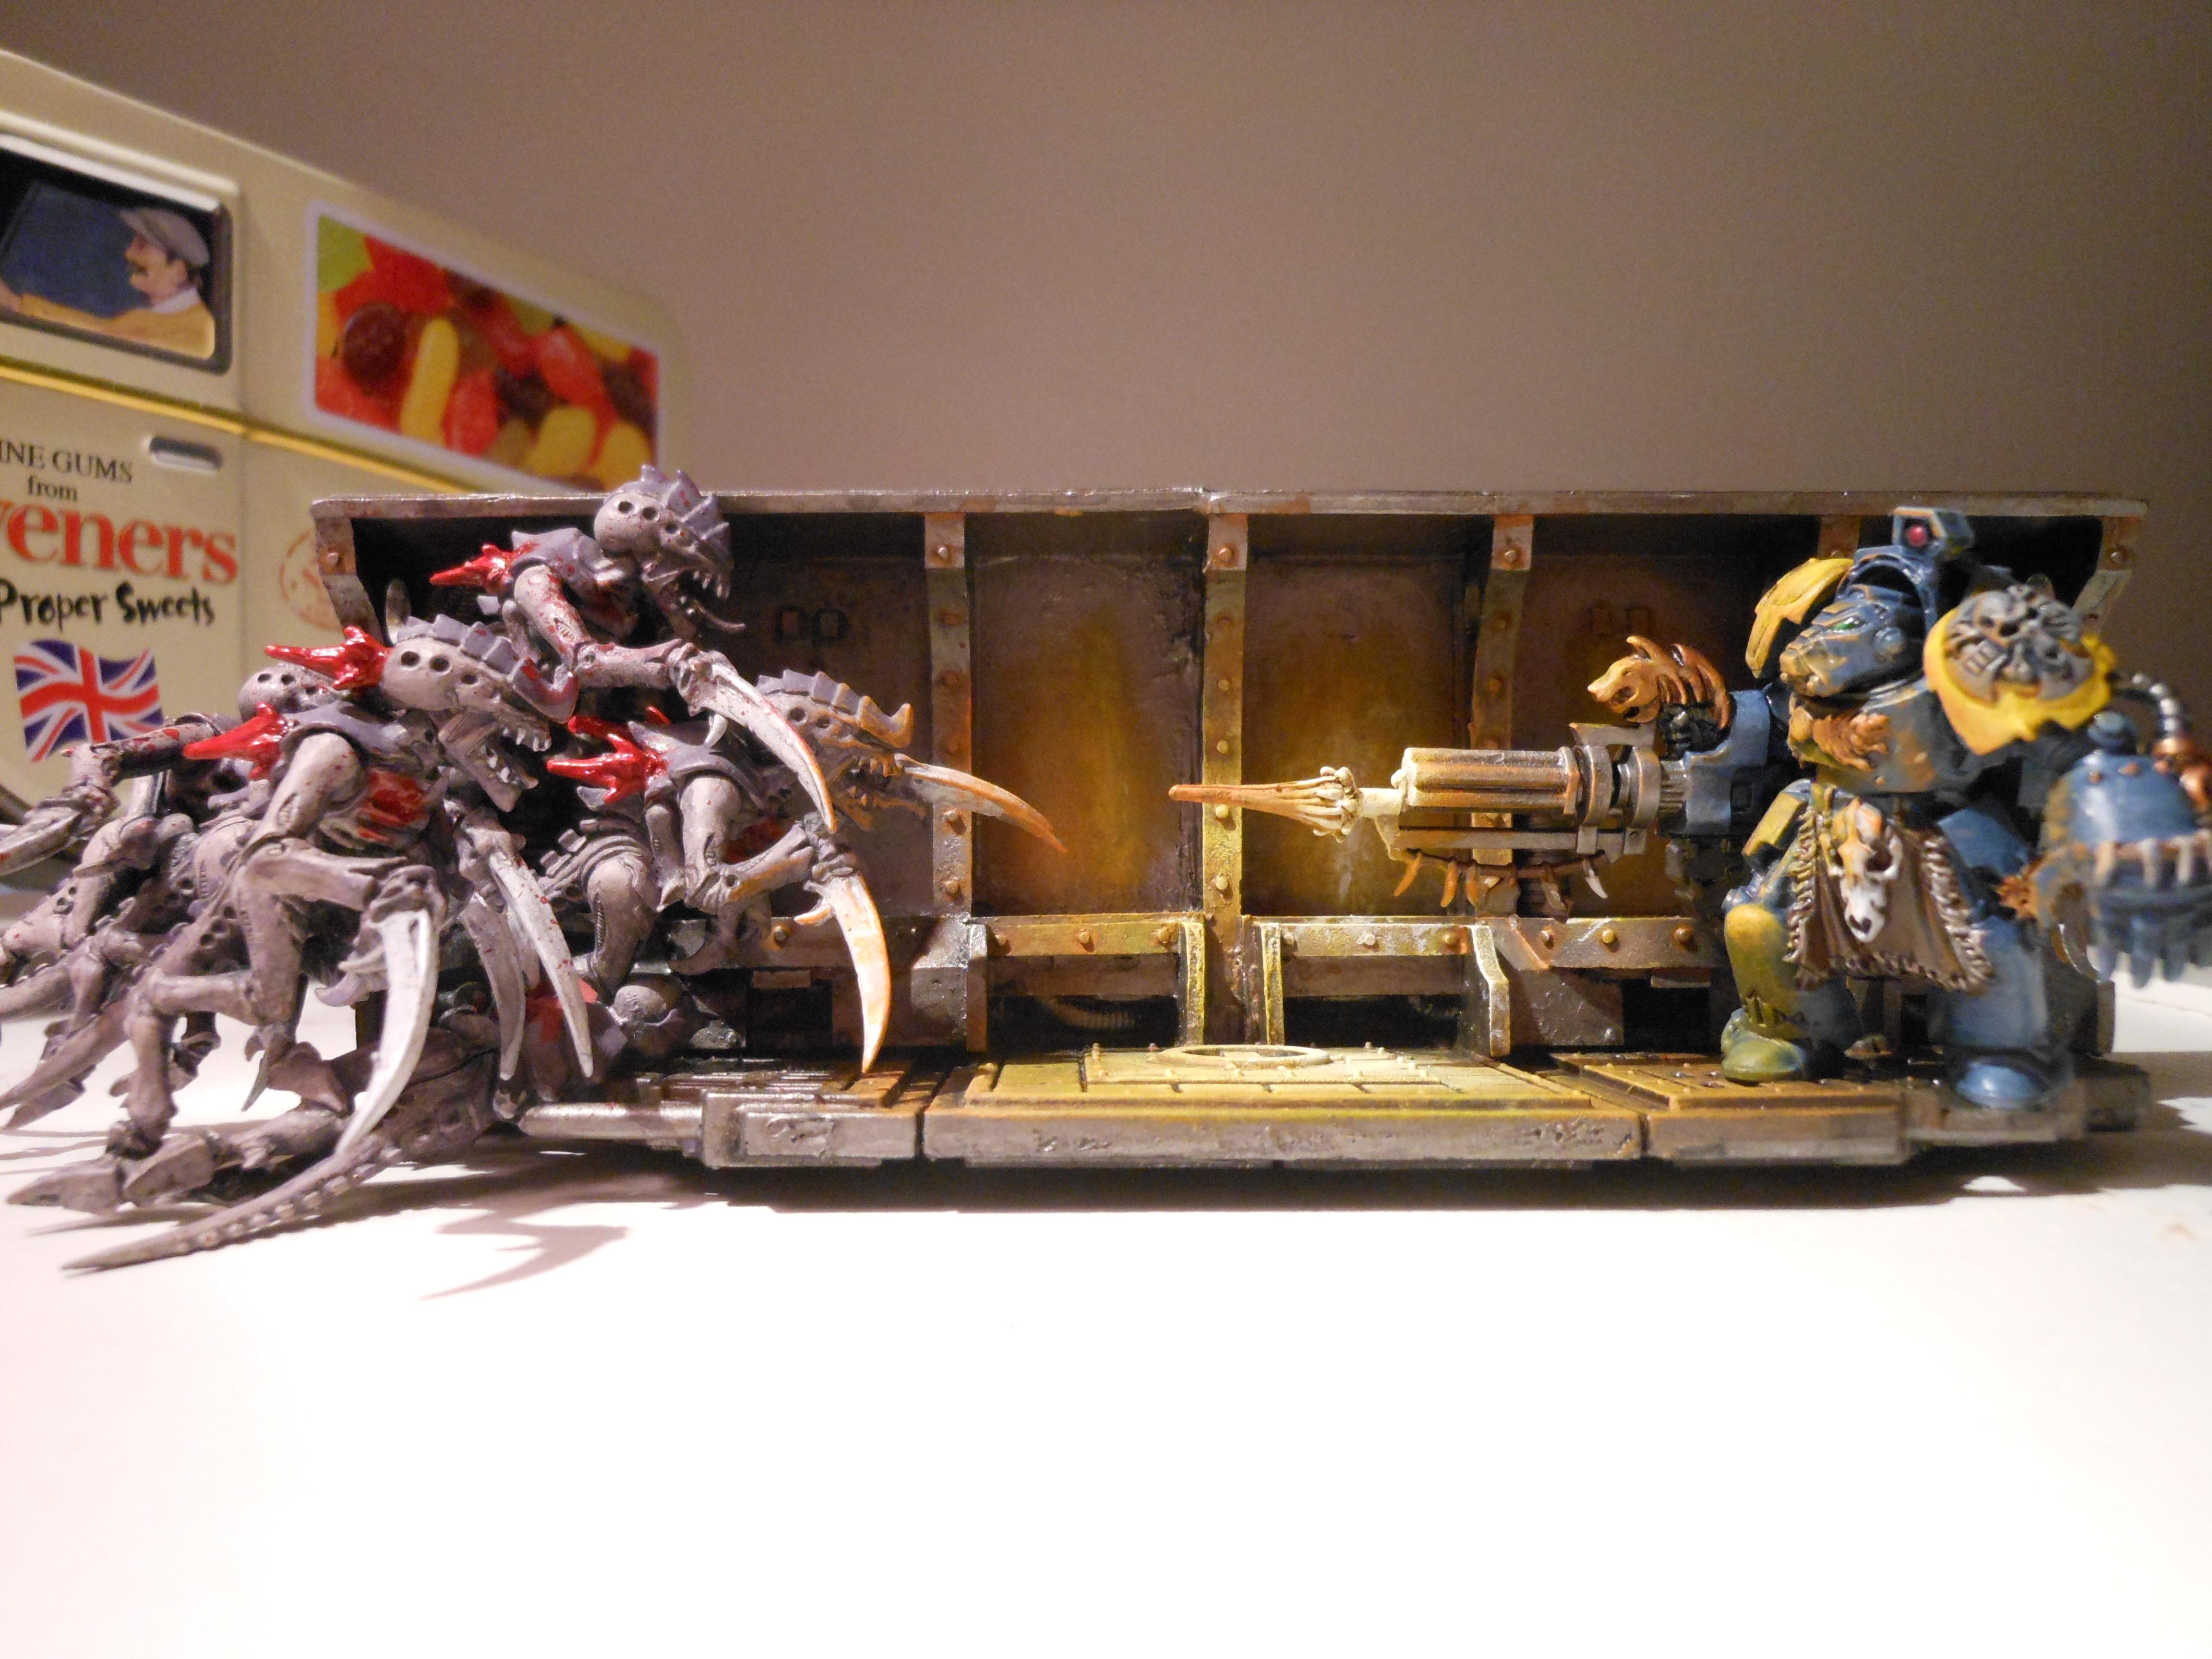 Gore, Hormagaunts, Object Source Lighting, Space Wolves, Spacehulk, Terminator Armor, Tyranids